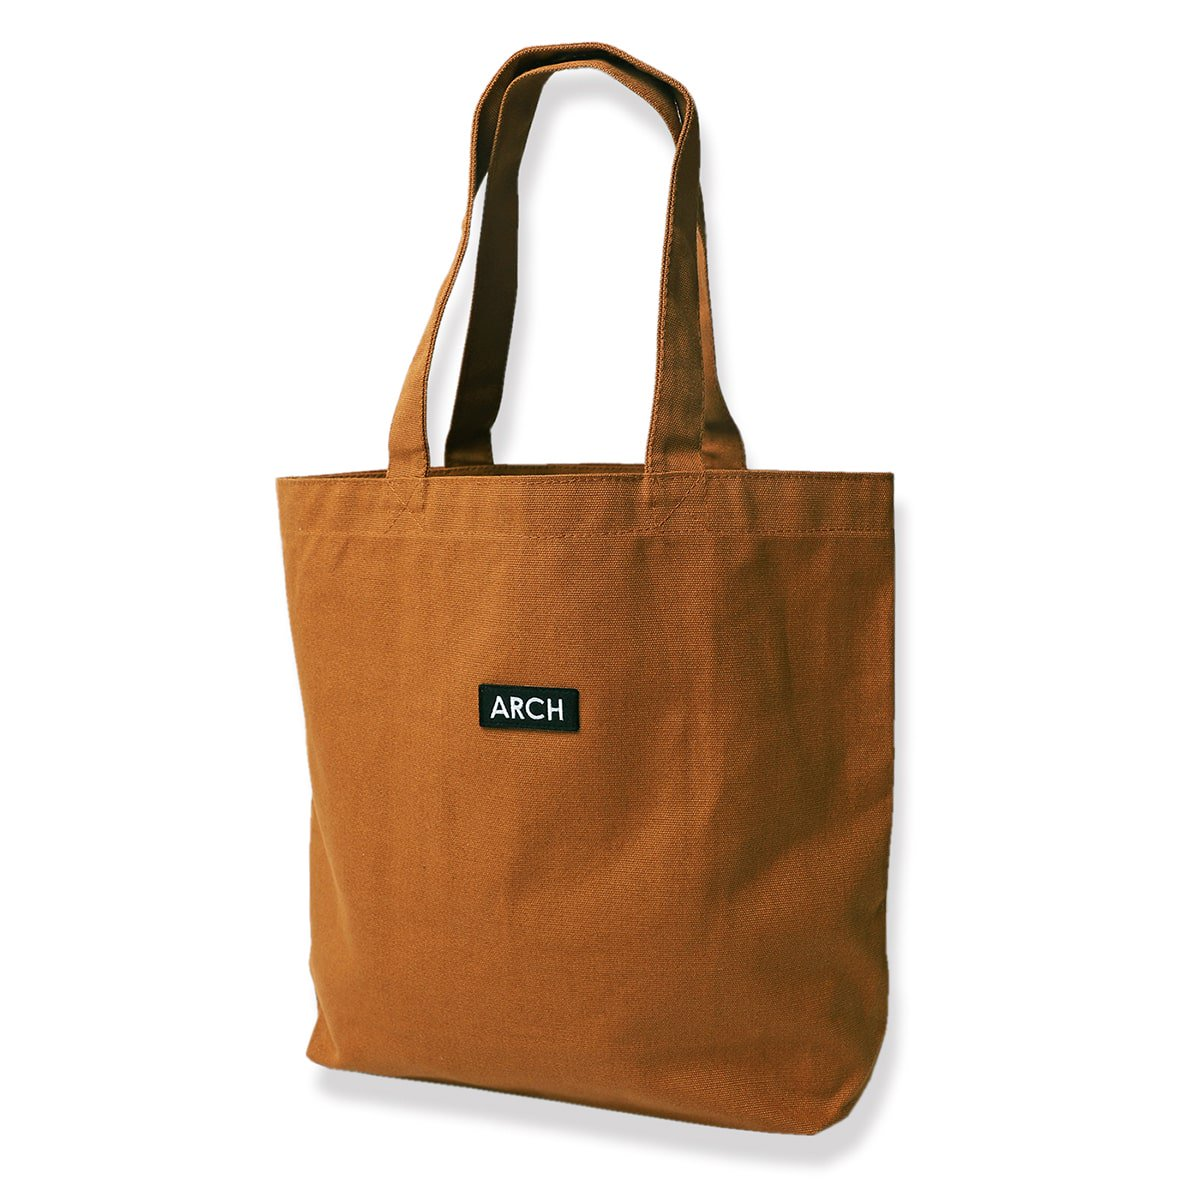 patch tote bag[medium]【camel】